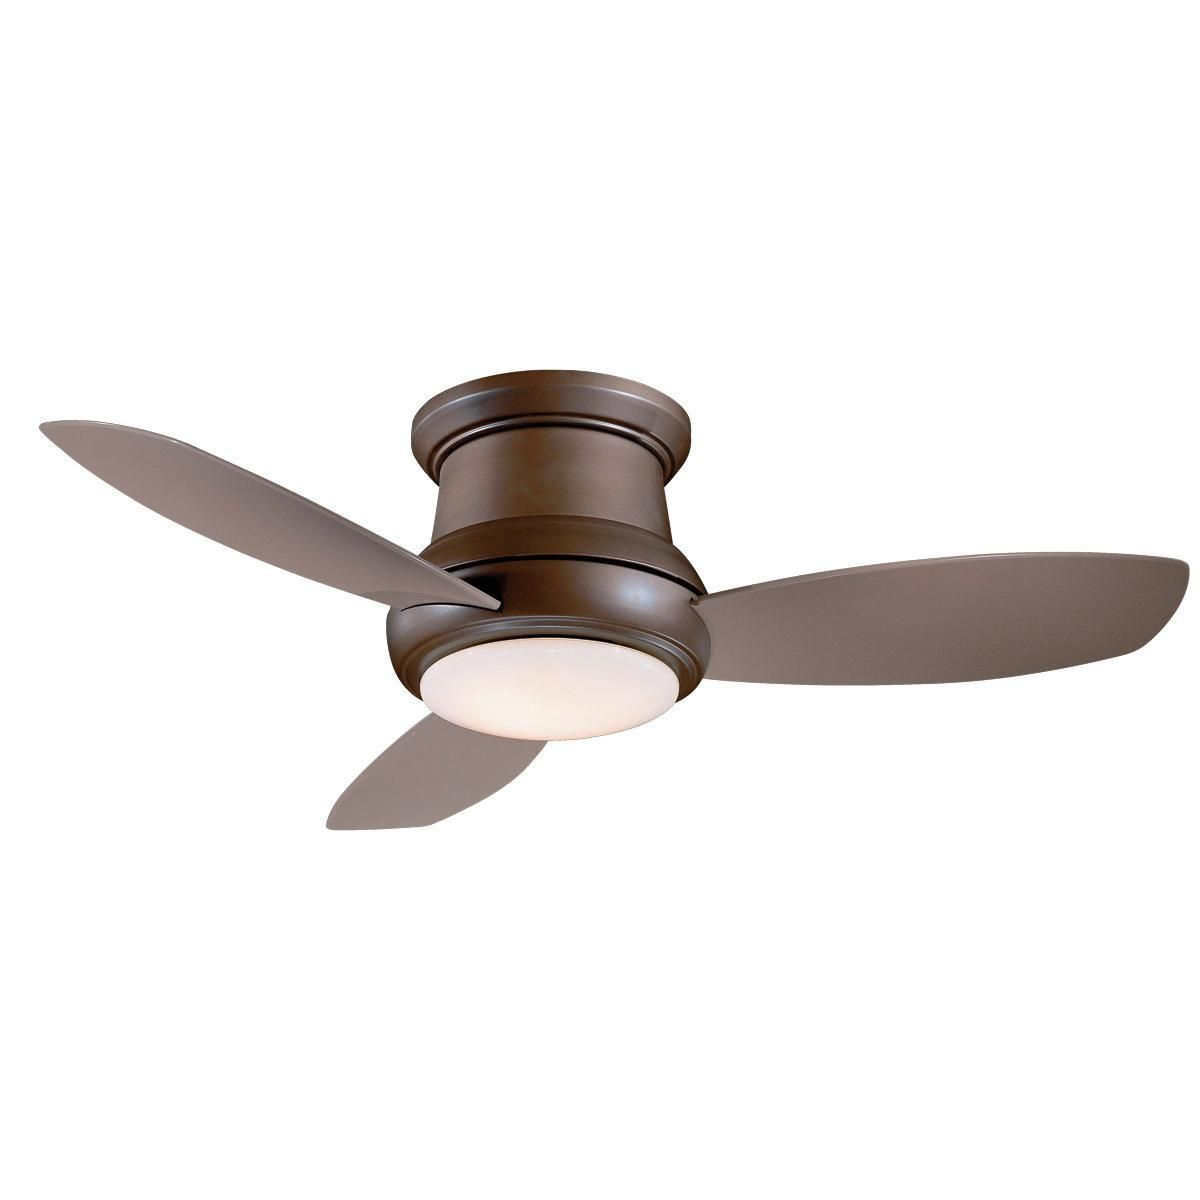 44 34 Low Ceiling Scoop Fan Shades Of Light Ceiling Fan With Light Flush Mount Ceiling Fan Ceiling Fan